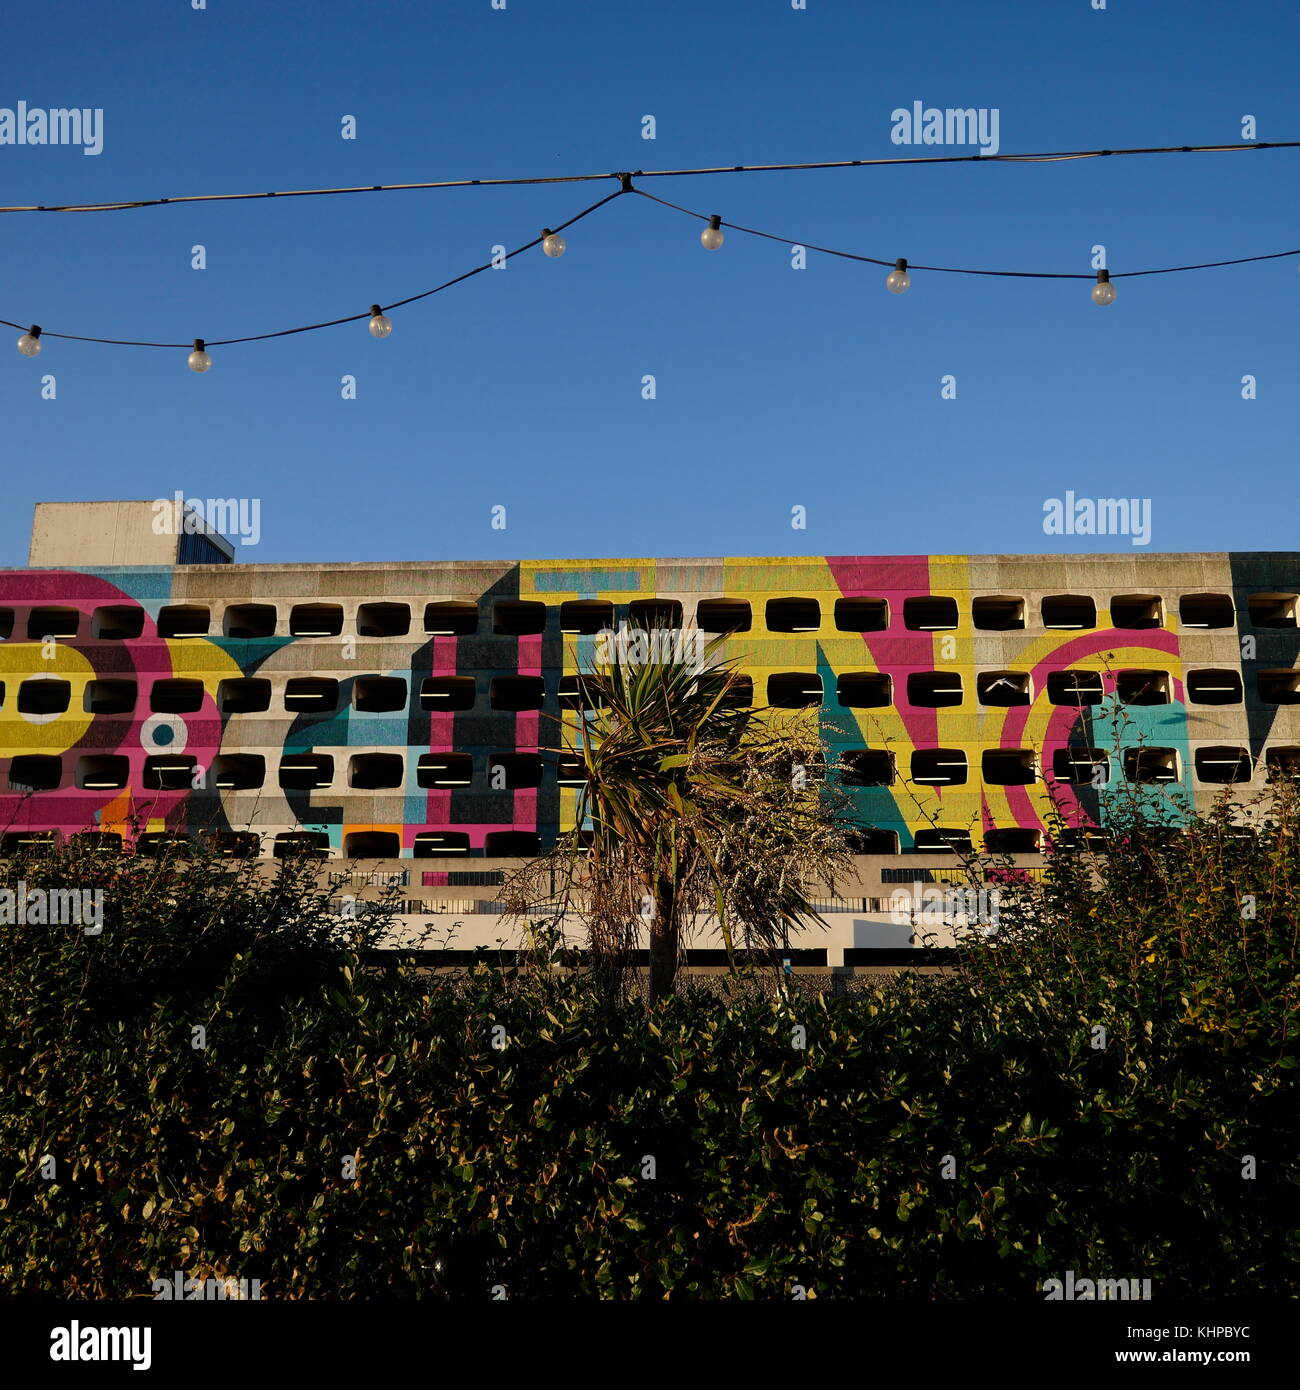 AJAXNETPHOTO. 2017. WORTHING, ENGLAND - SPACE SAVER - THE REPAINTED GRAFTON STREET MULTI STORY CAR PARK IN THE TOWN - Stock Image